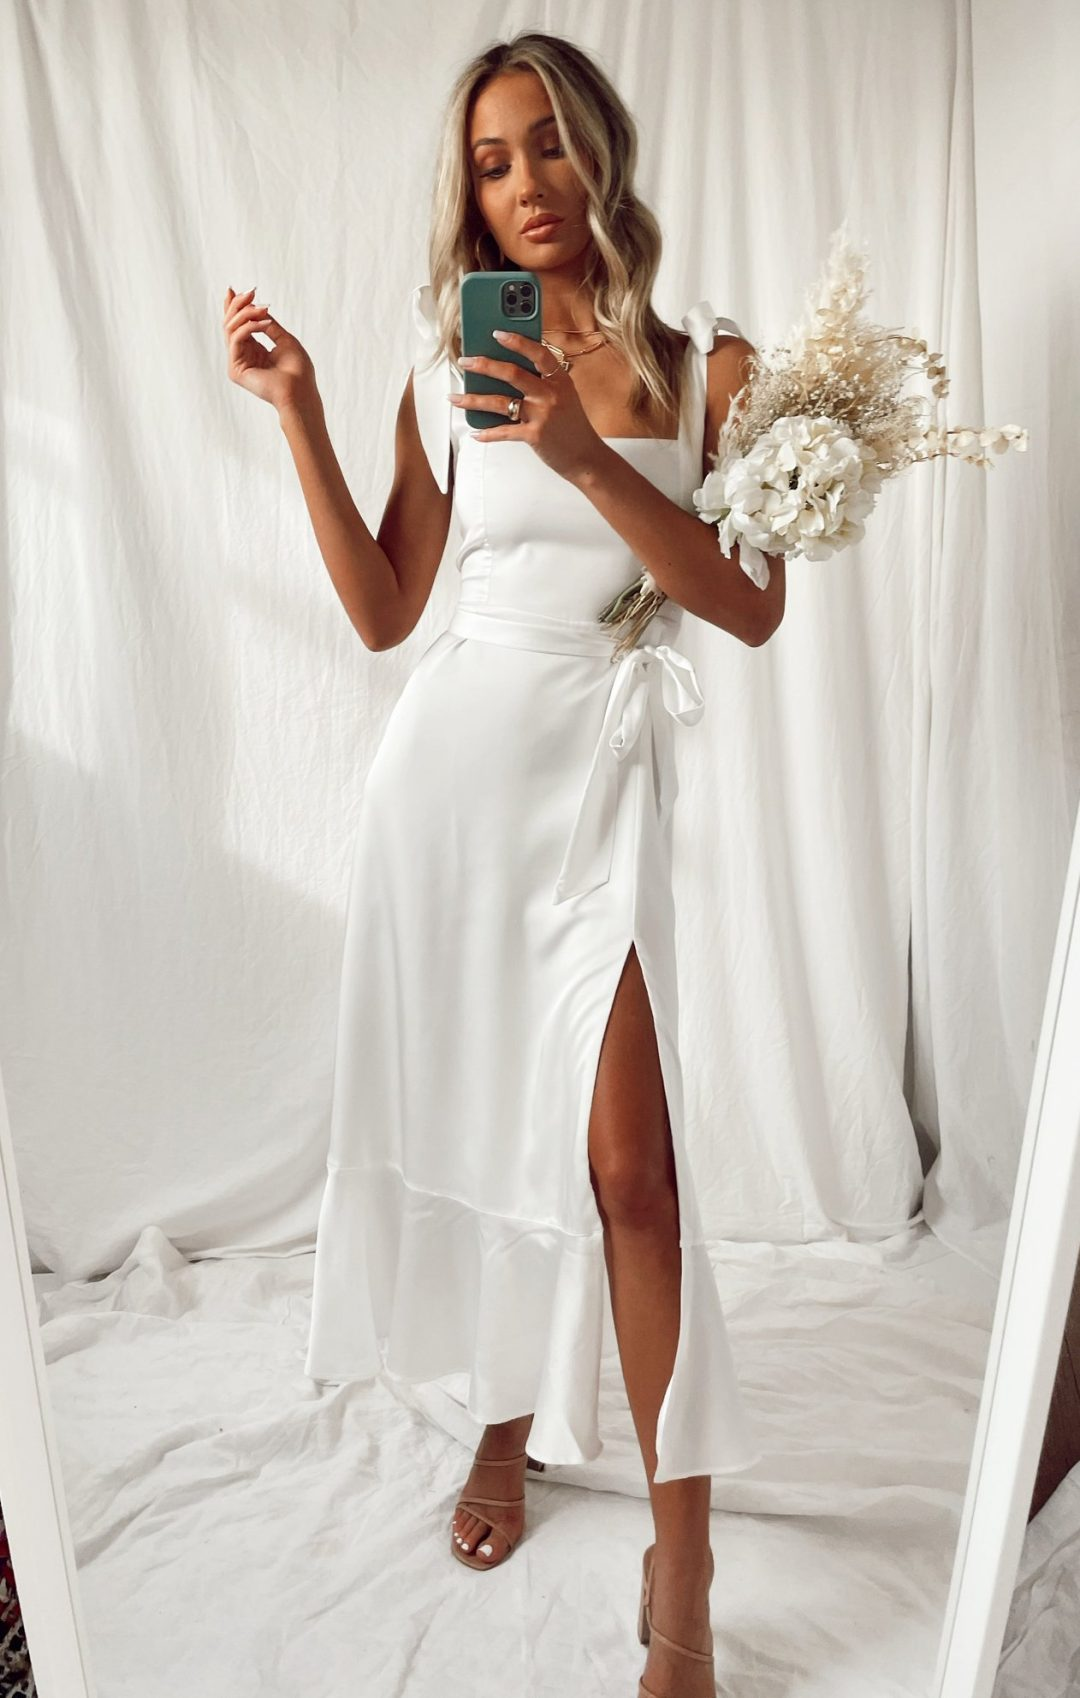 White satin graduation dress in midi length with a slit